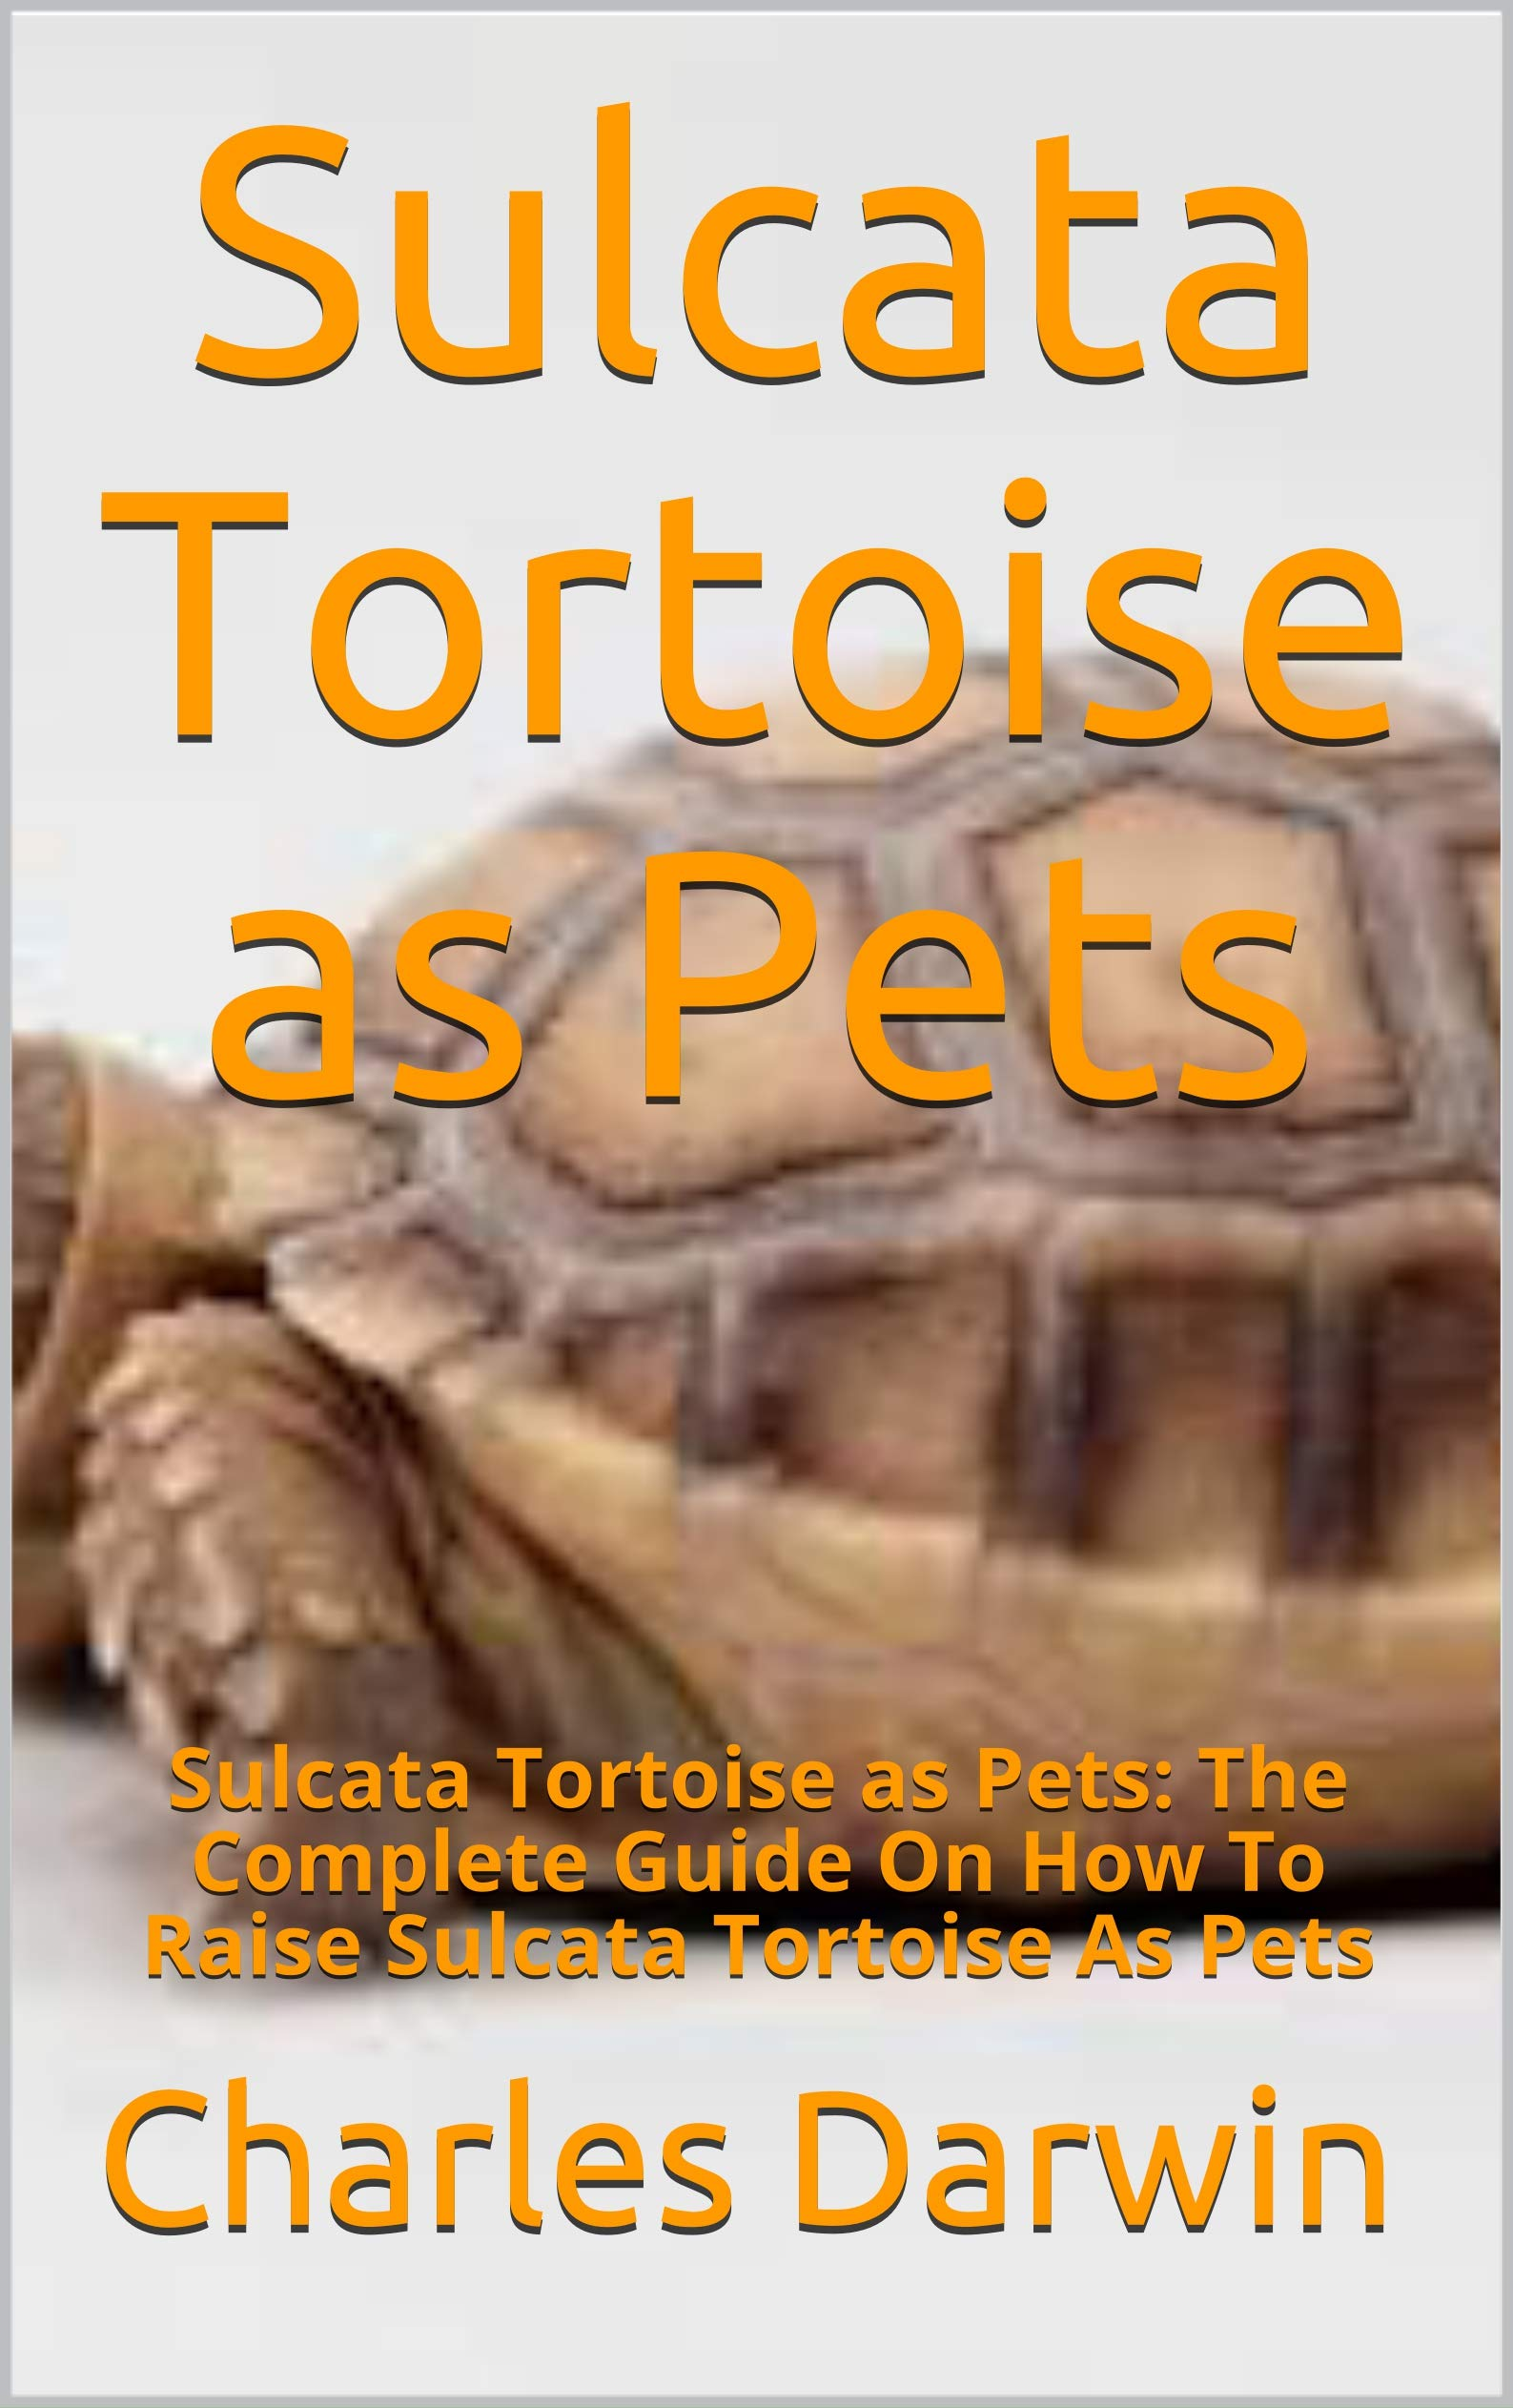 Sulcata Tortoise as Pets: Sulcata Tortoise as Pets: The Complete Guide On How To Raise Sulcata Tortoise As Pets